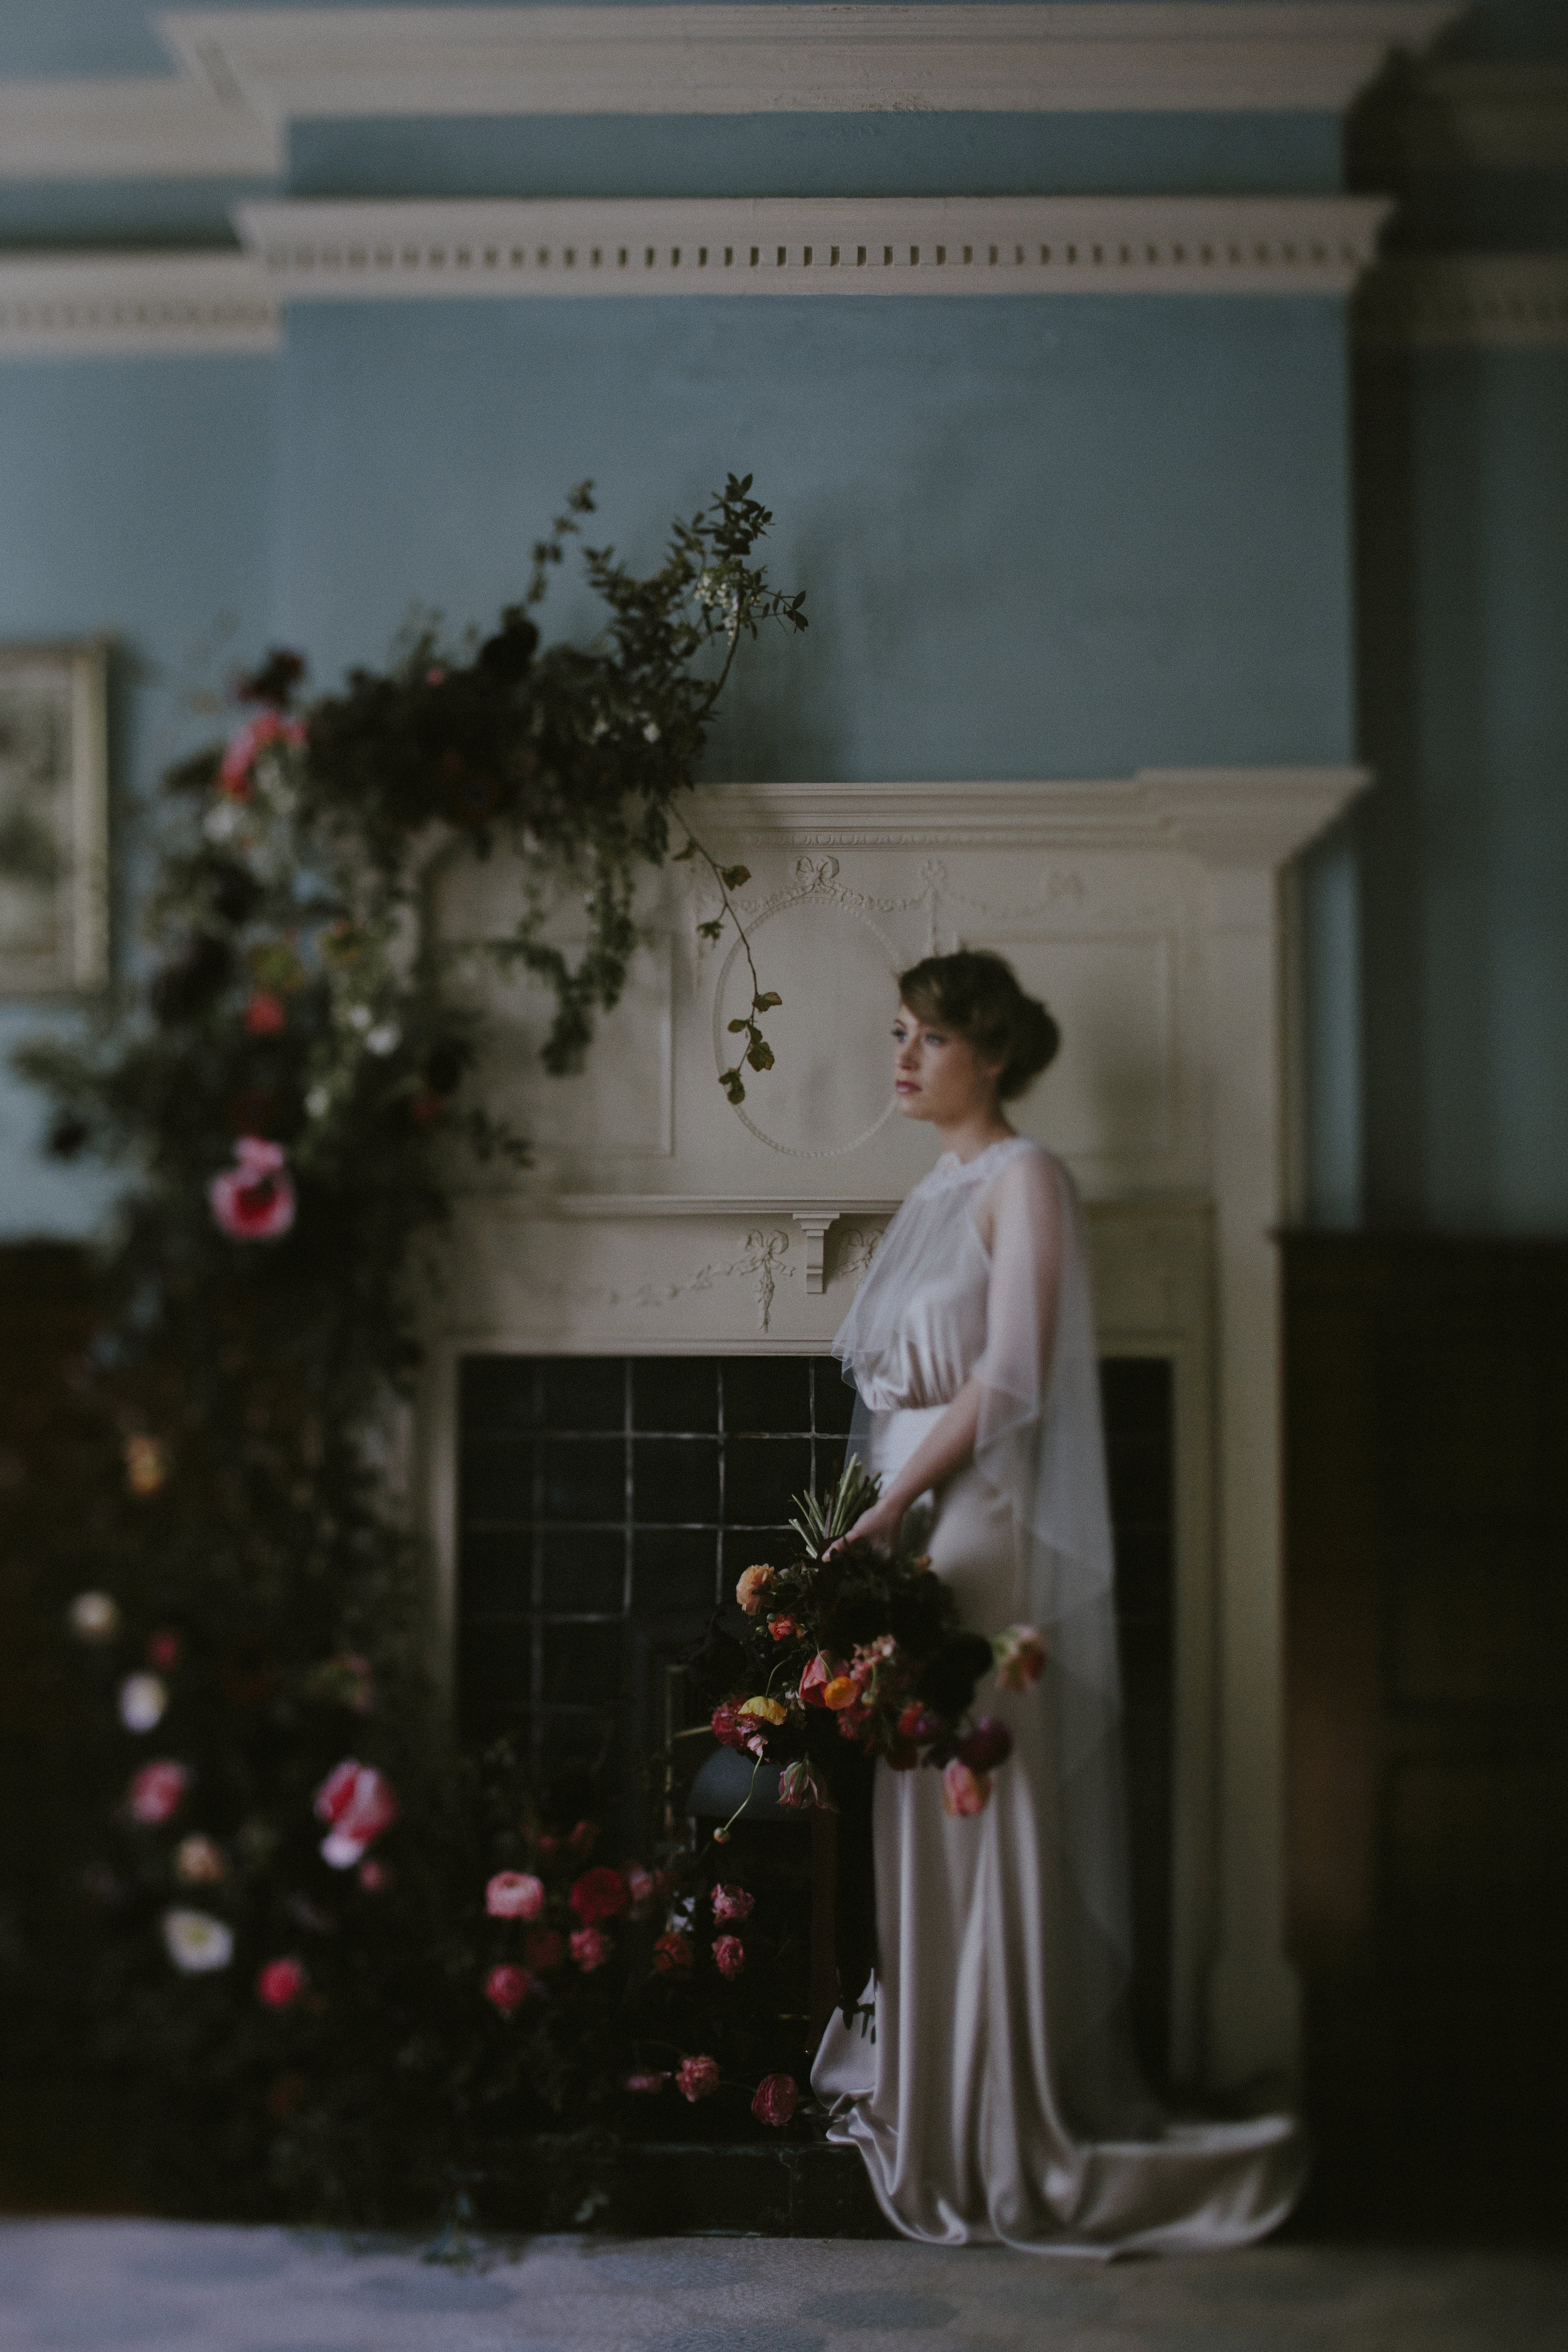 Agnes-and-bee-Kate-Beaumont-wedding-dresses-Ruth-Atkinson-19.jpg